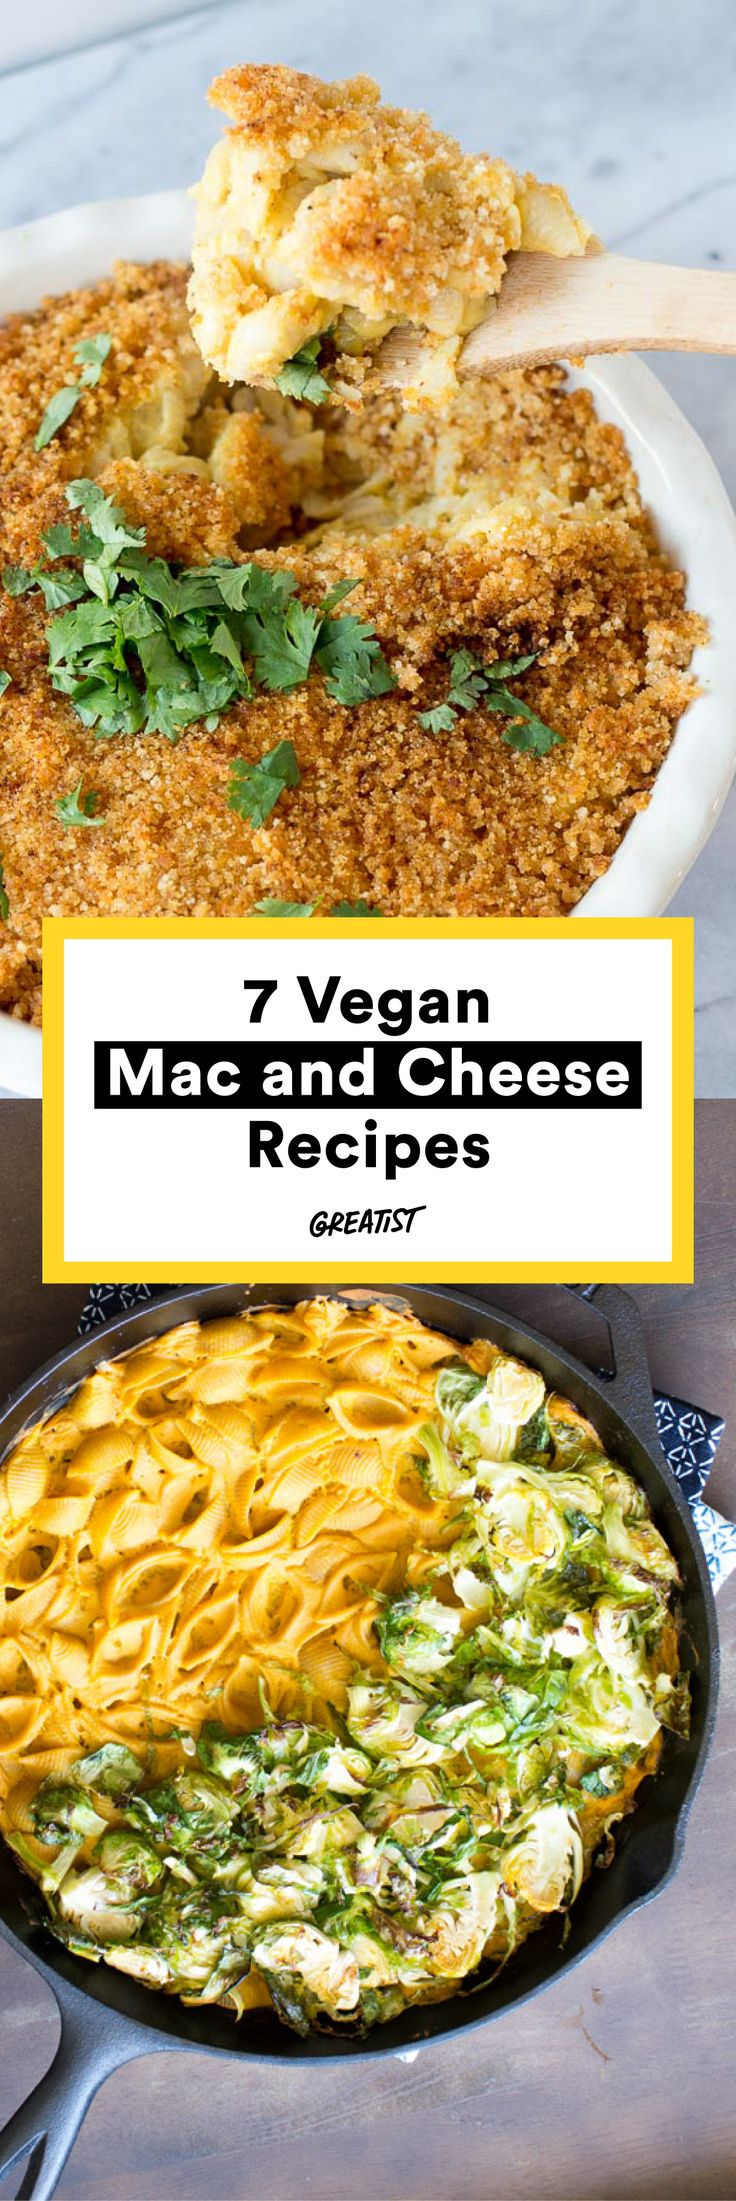 "This is the most perfect article written ever.  Say ""dairy-free cheese!"" #vegan #macandcheese #recipes http://greatist.com/eat/vegan-mac-and-cheese-recipes-for-your-dairy-free-friends"